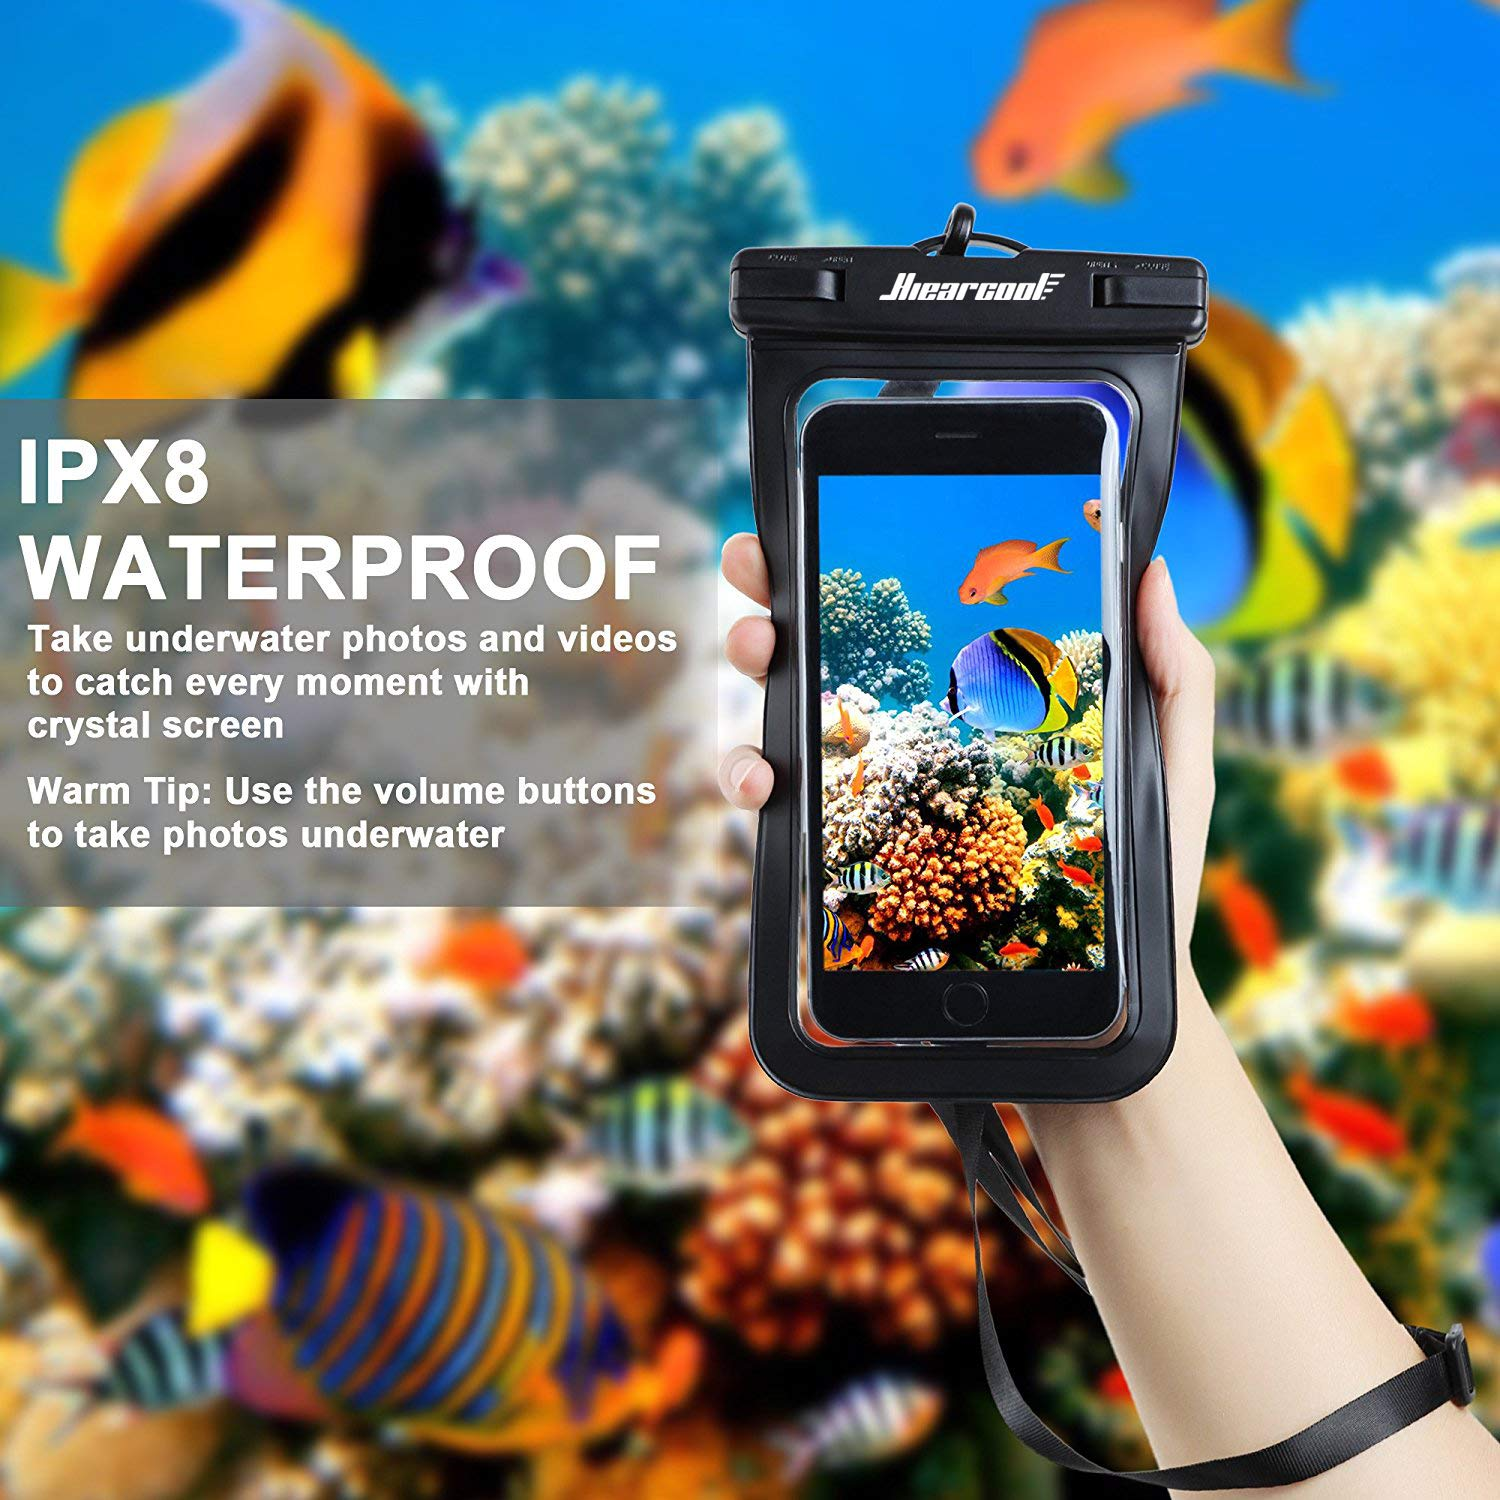 Universal Waterproof Case - Ansot IPX8 Waterproof Phone Pouch - Cellphone Dry Bag for iPhone X/8/ 8plus/7/7plus/6s/6/6s Plus Samsung Galaxy s8/s7 Google Pixel 2 HTC LG Sony Moto up to 7.0'' - 2 Pack by Hiearcool (Image #6)